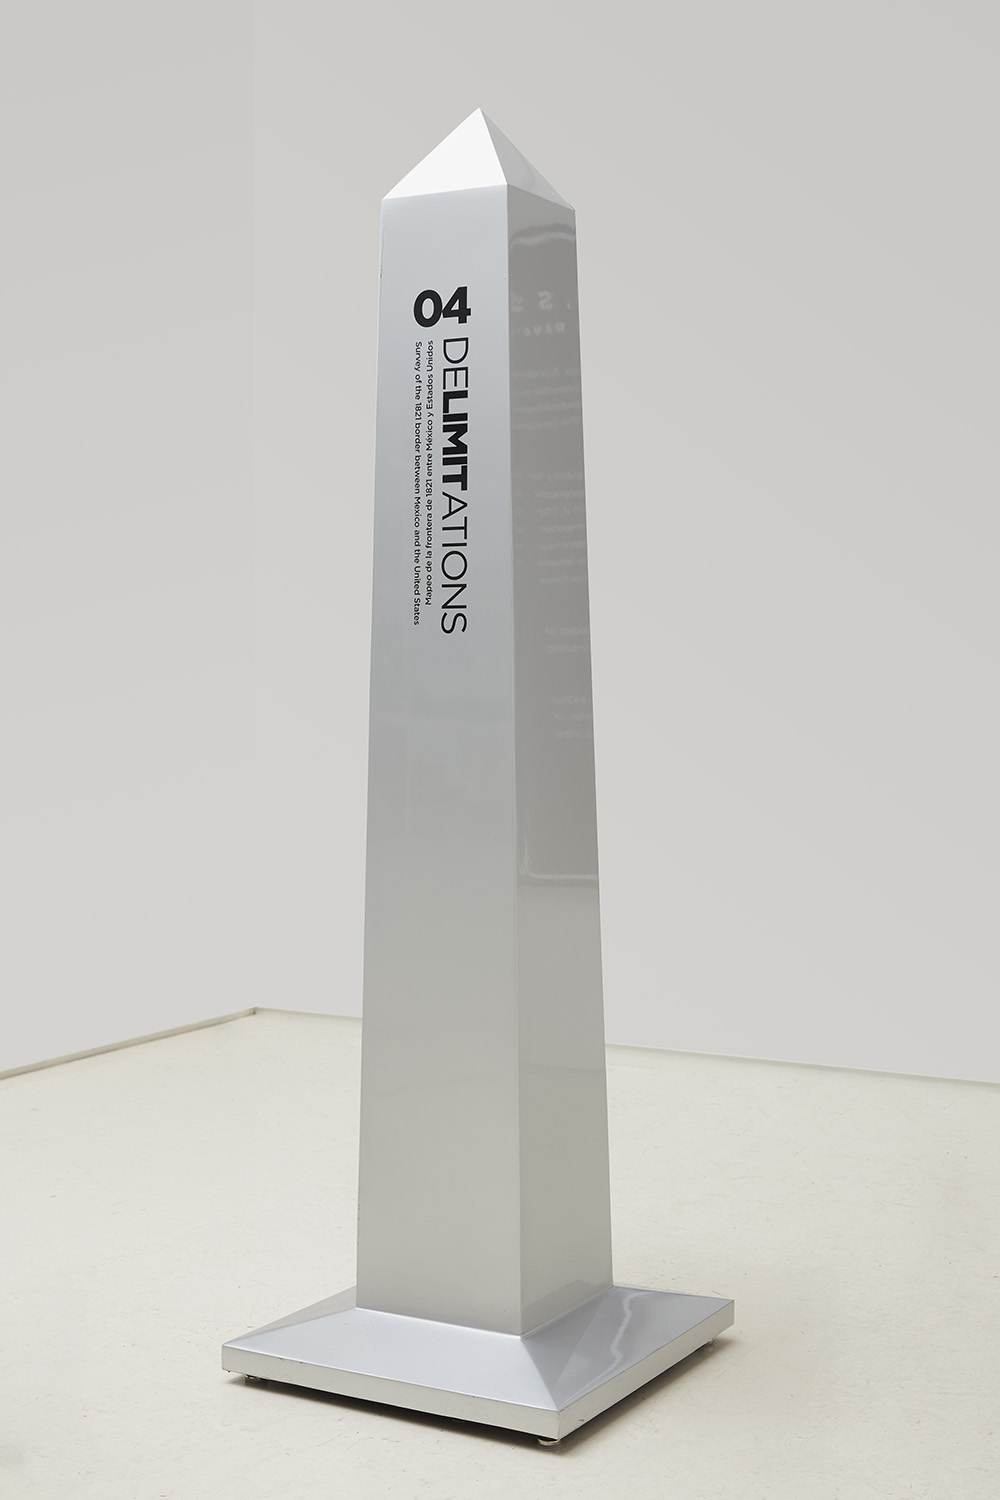 Obelisk 04, 42° 0.206'N 123° 53.340' W,  2014 Automotive paint and vinyl over steel 80 x 24 x 24 inches Edition of 3 per location + 2 AP